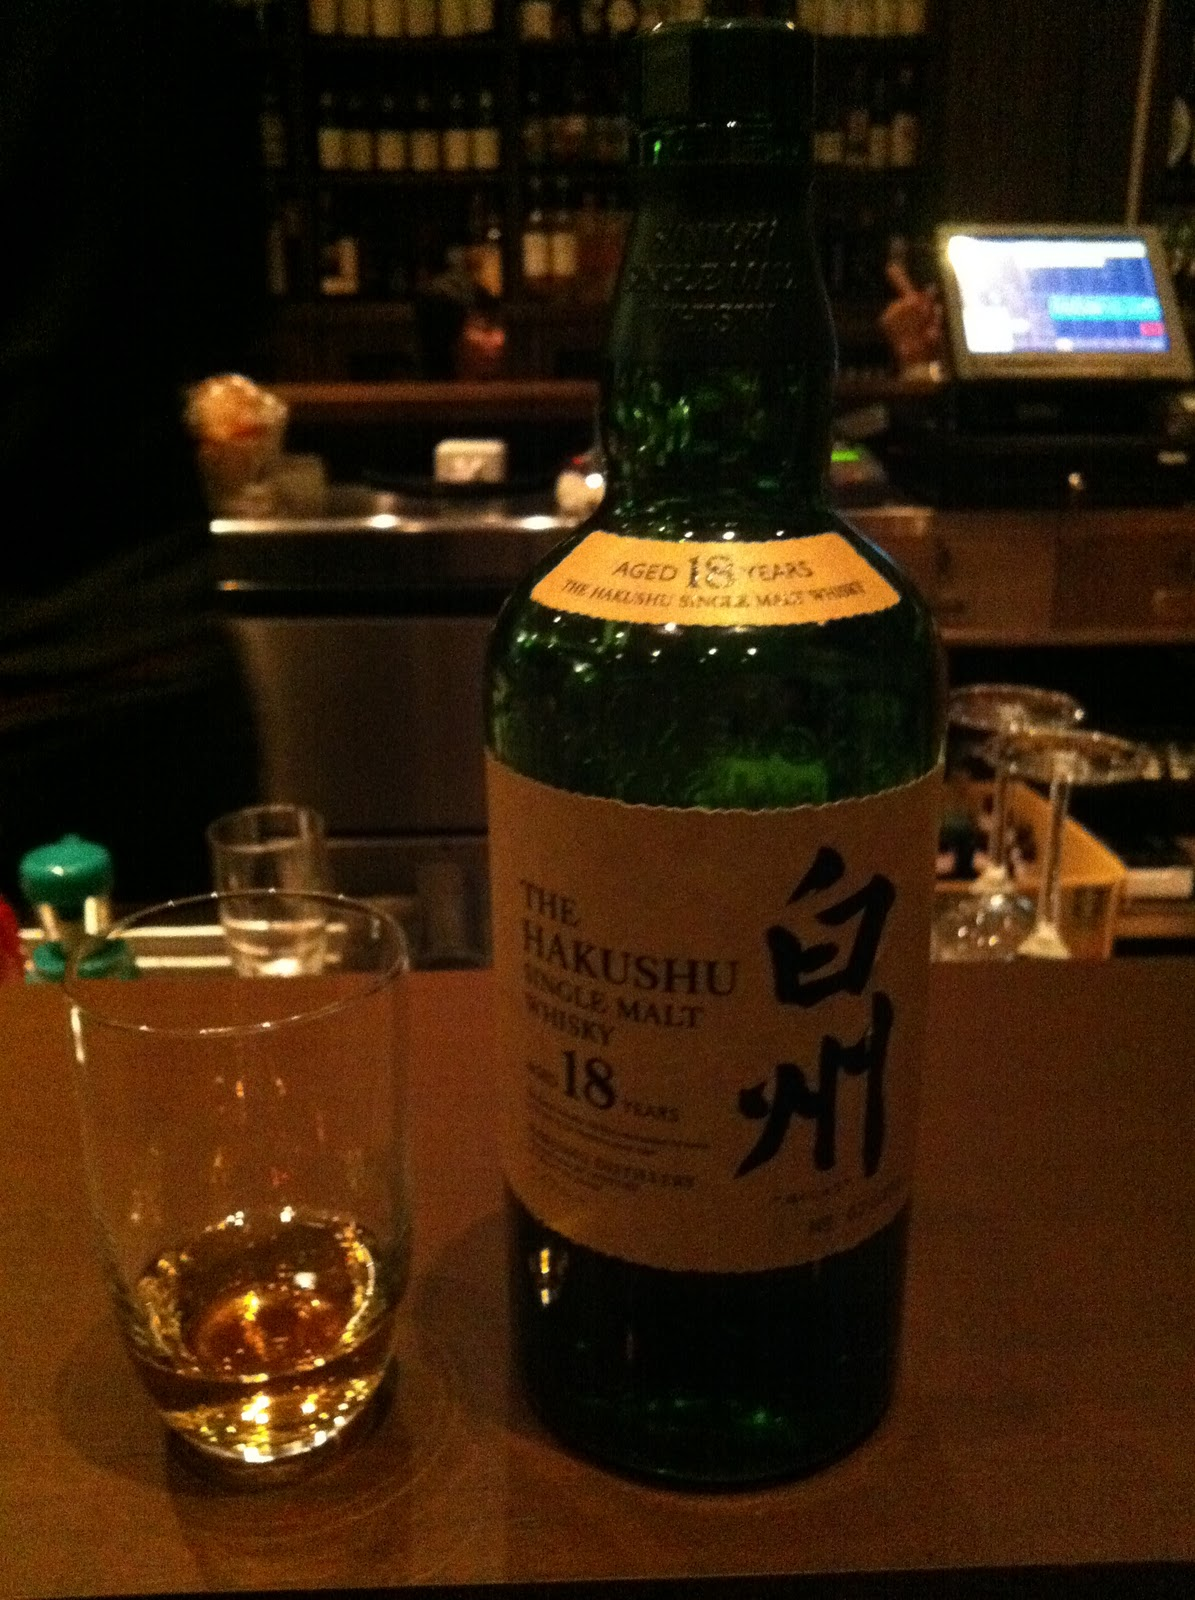 The Singapore Whisky Blog: March 2011